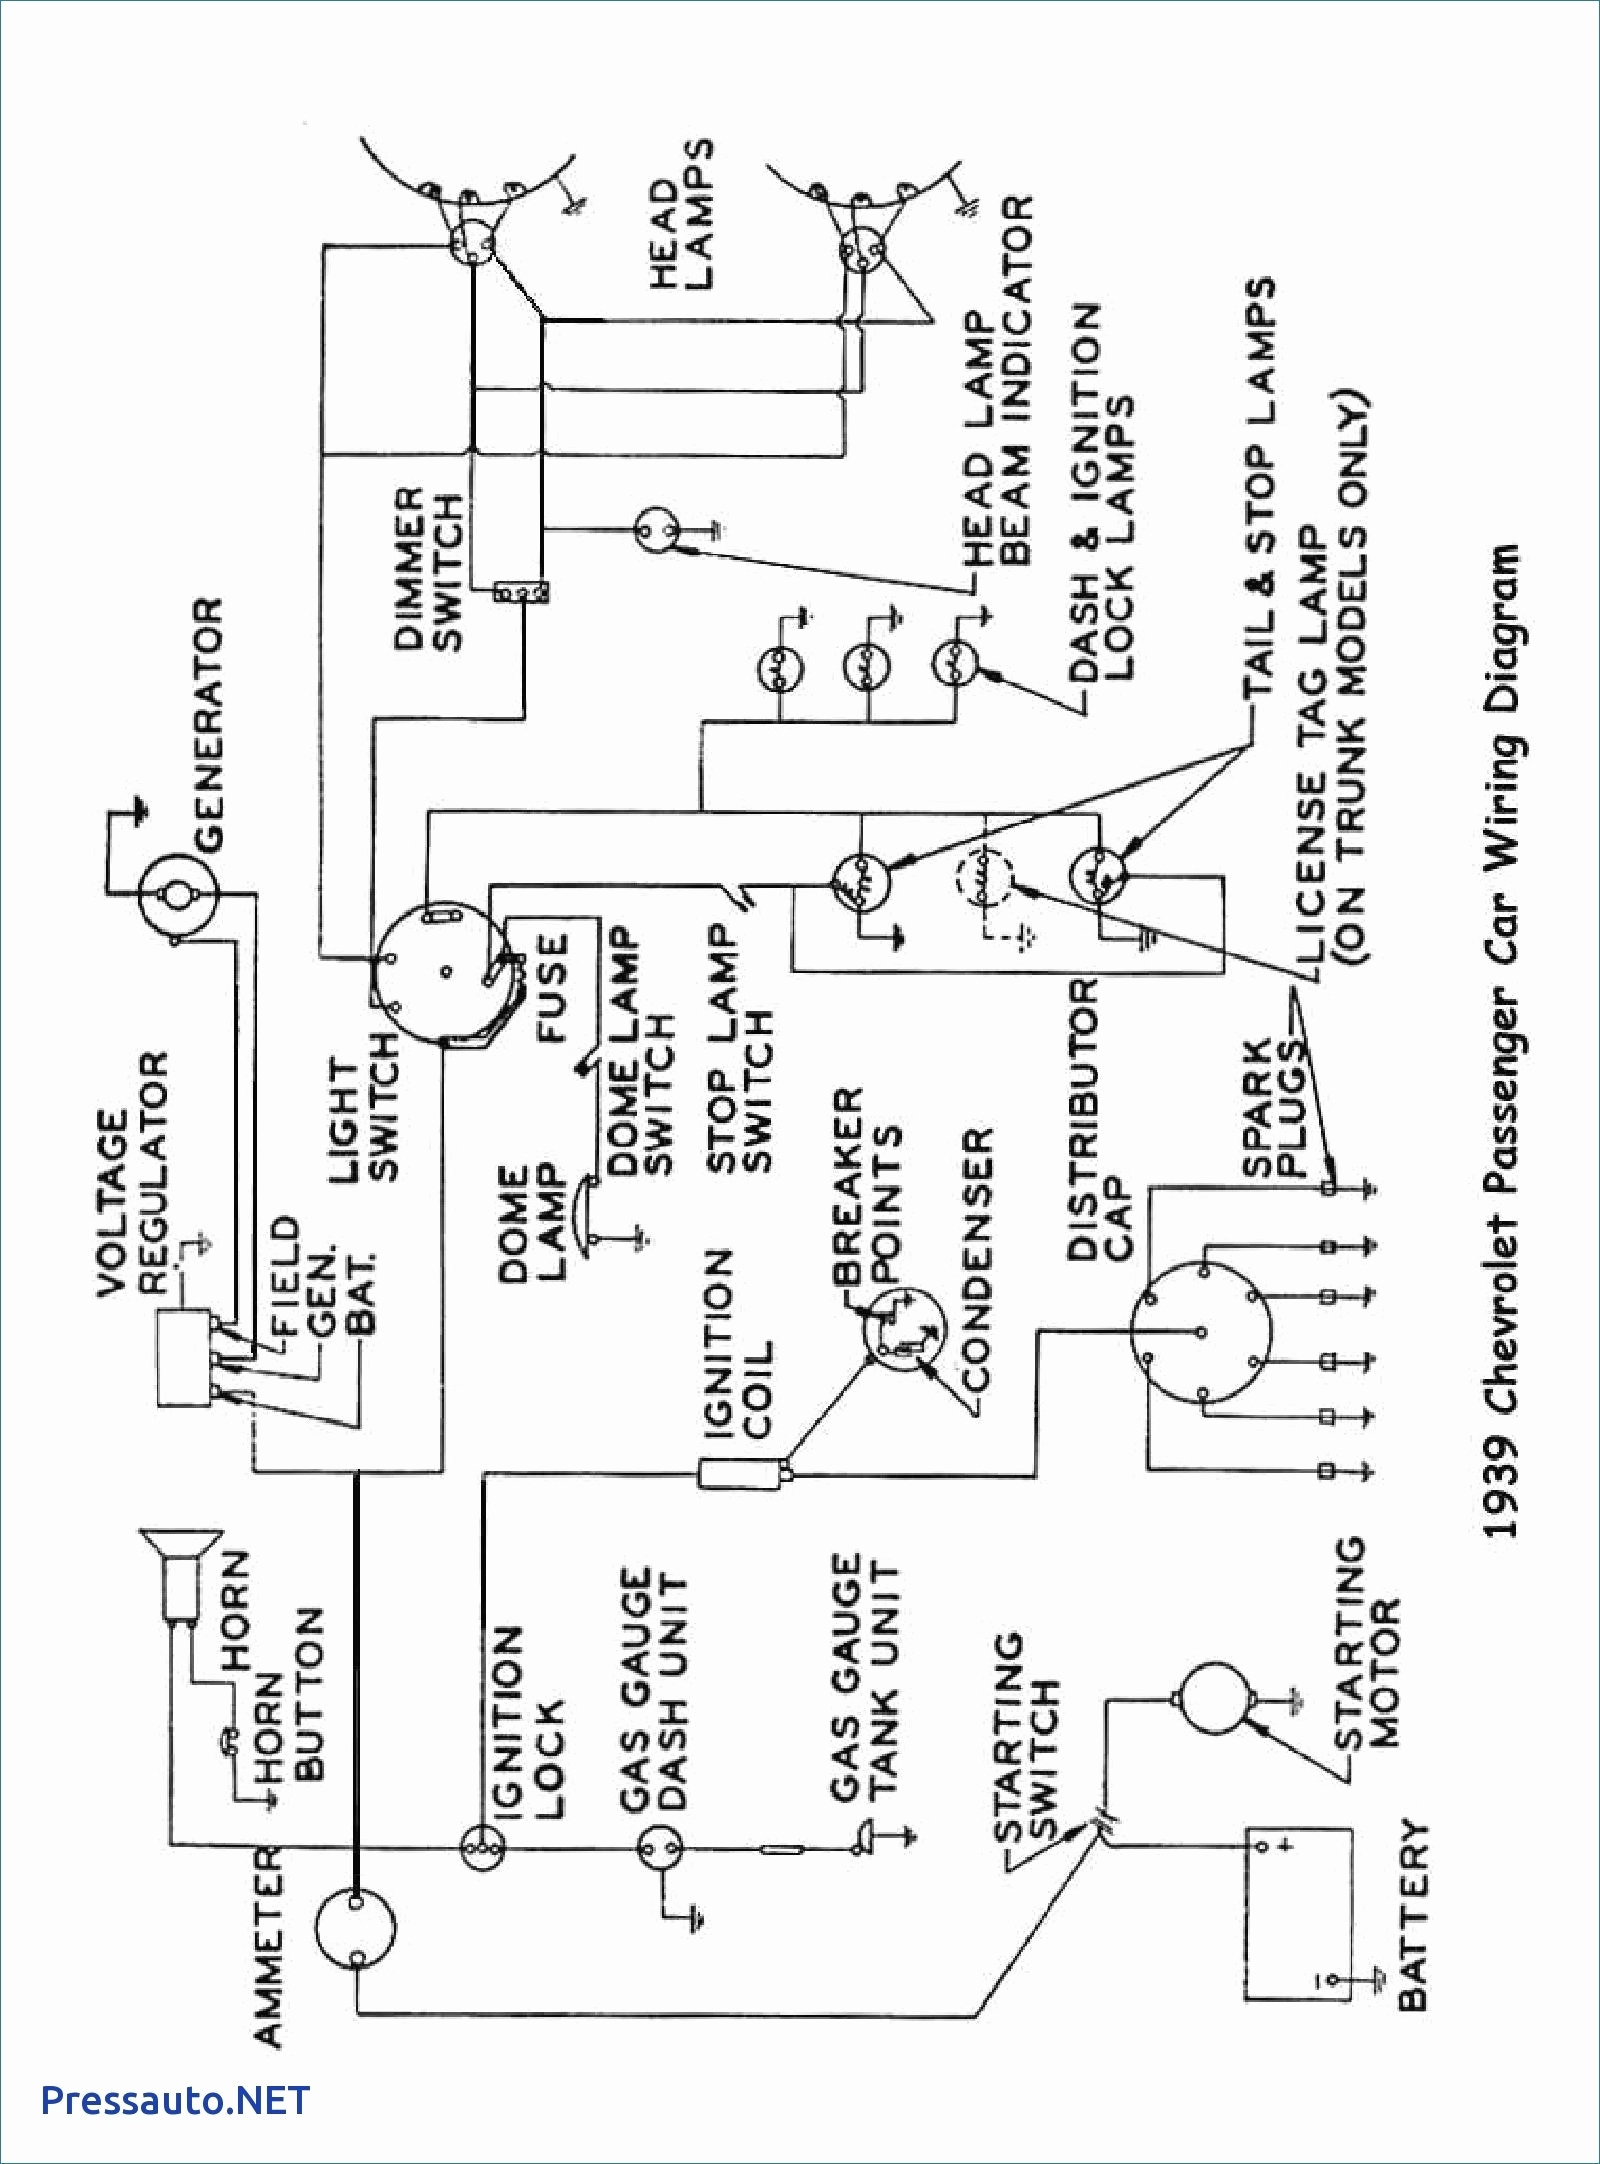 International 4700 Wiring Diagram Headlights | Wiring Library - International 4700 Wiring Diagram Pdf